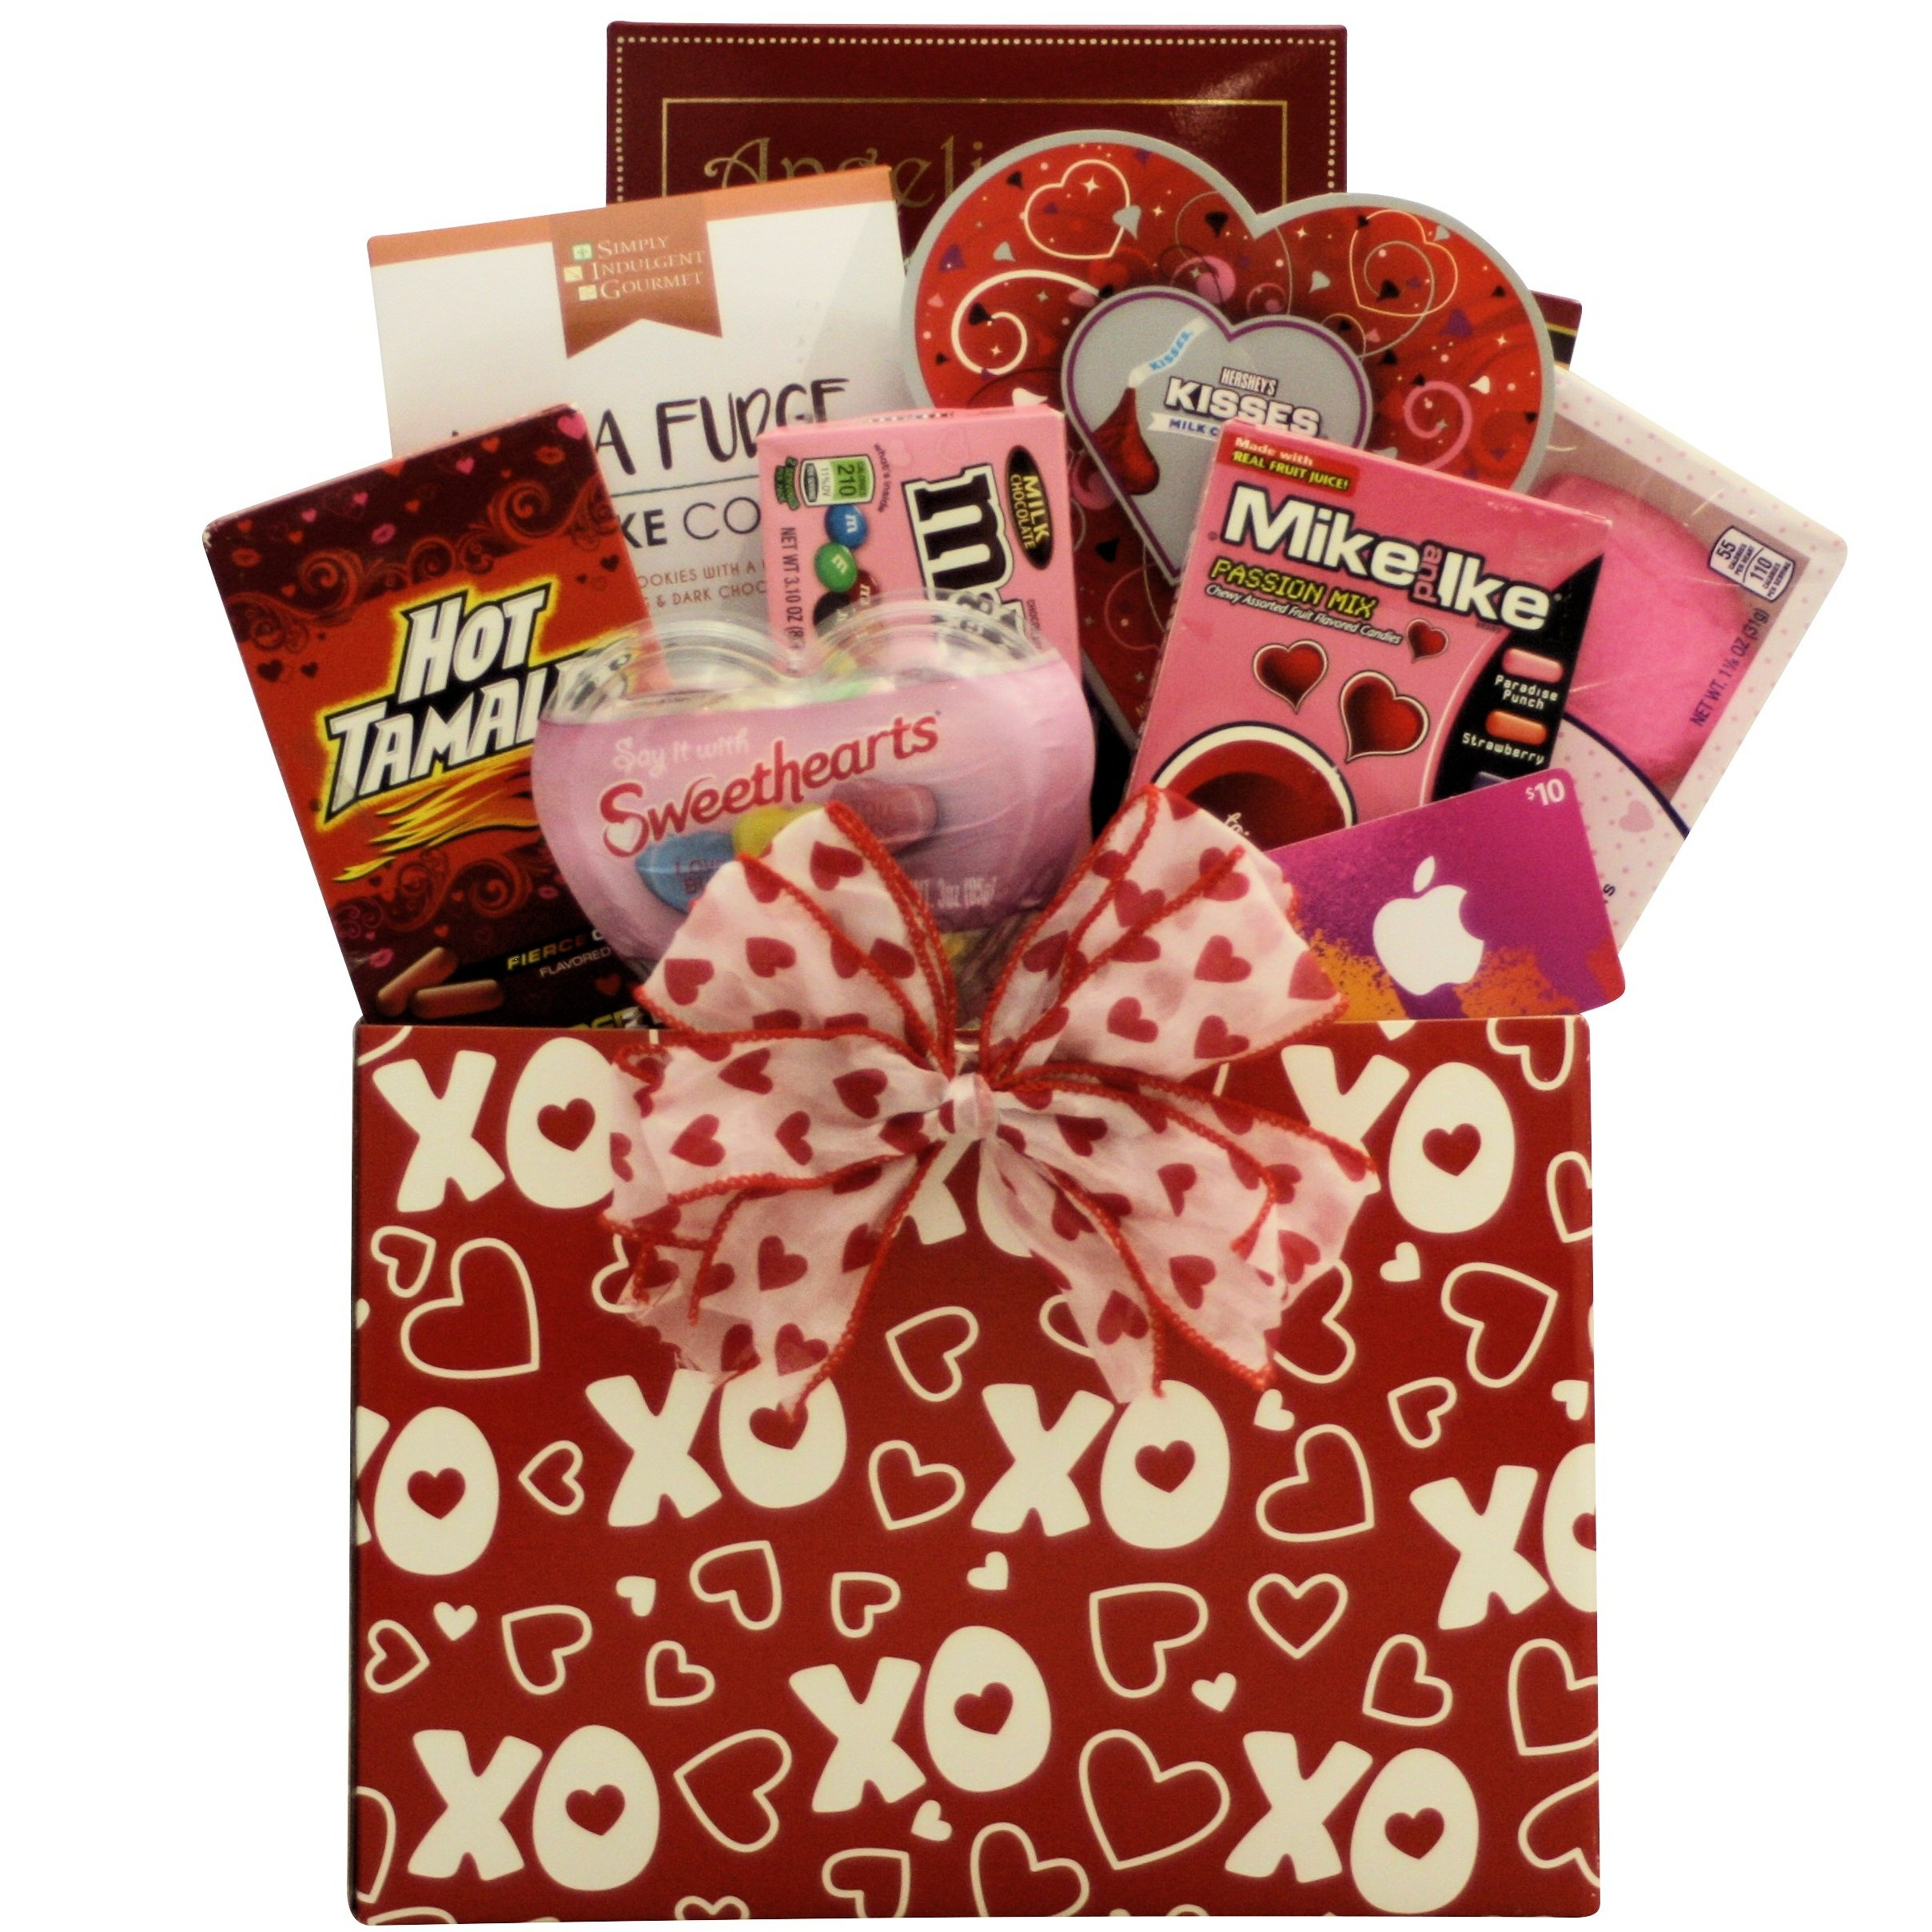 CDM product GreatArrivals Gift Baskets Valentine's Day Gift Basket for Tweens and Teens, Hugs and Kisses with iTunes Gift Card, Red and White, 64 Oz small thumbnail image